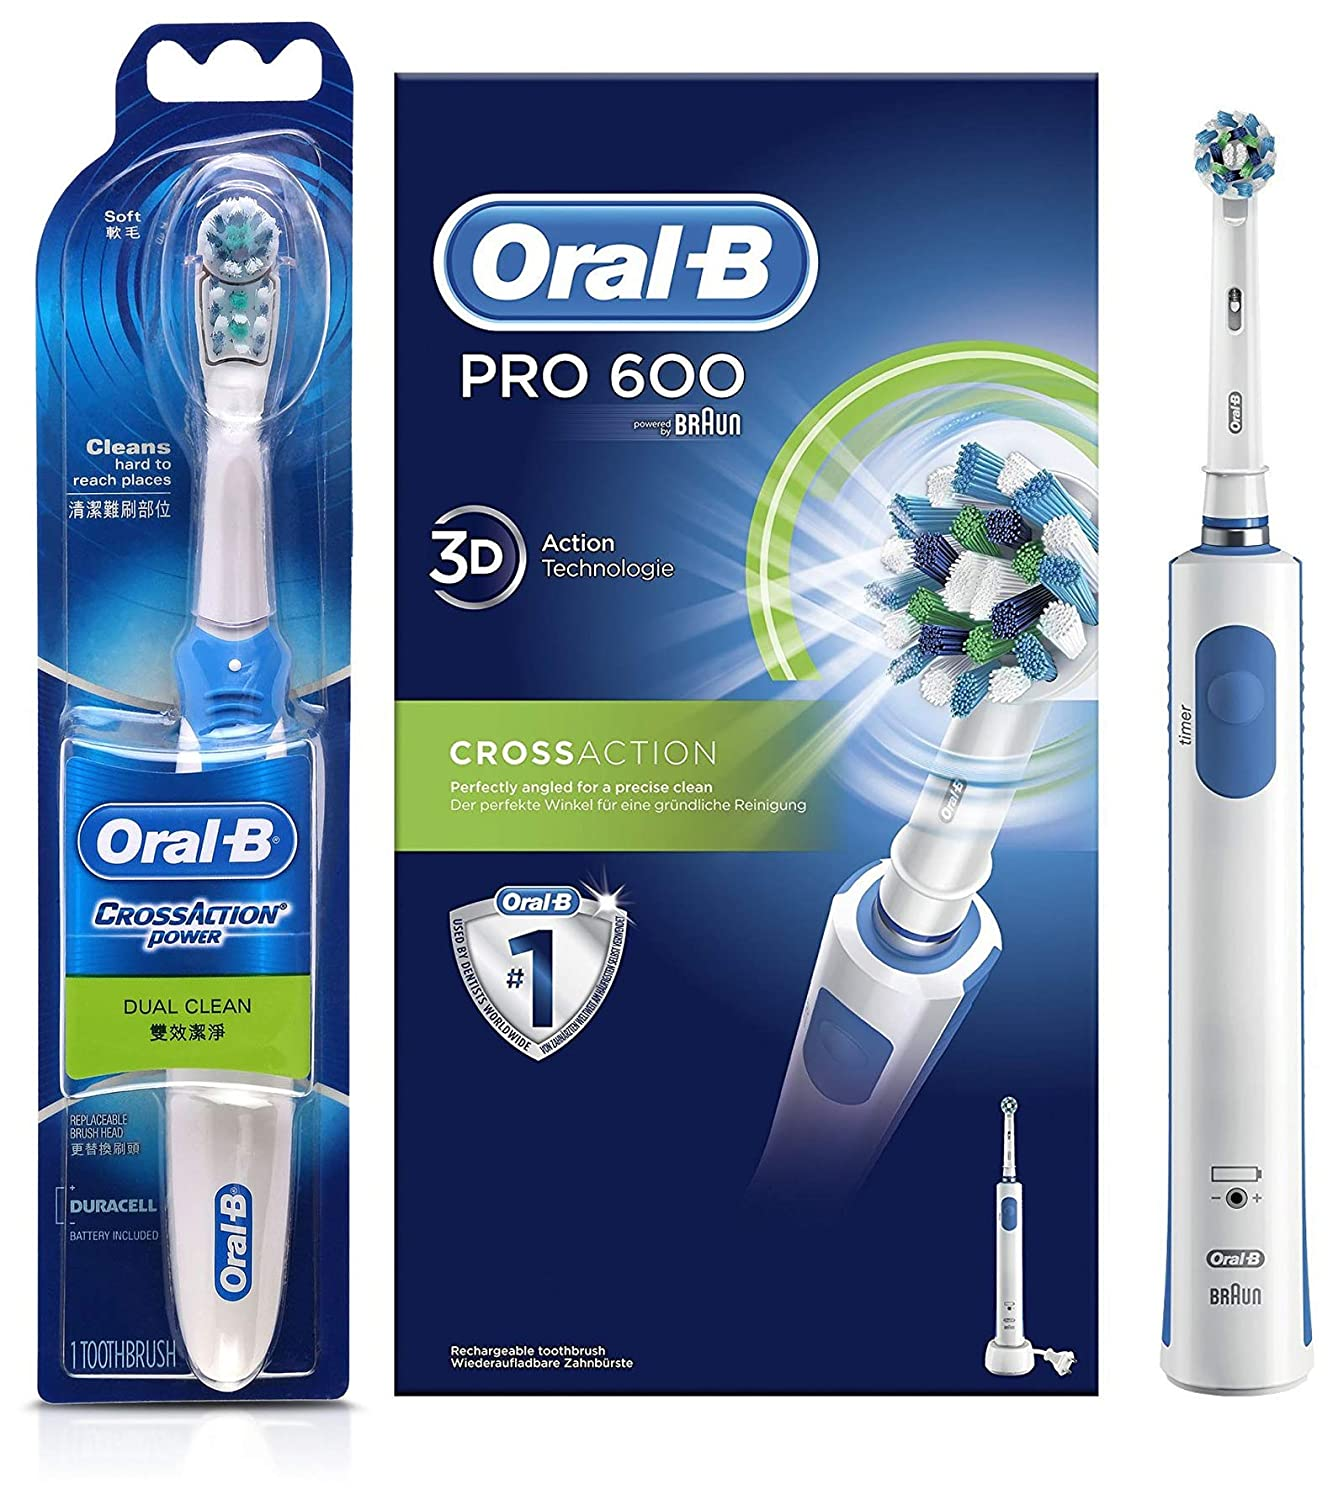 Oral B Cross Action Battery Powered Toothbrush Oral B Pro 600 Cross Action Electric Rechargeable Toothbrush Amazon In Health Personal Care